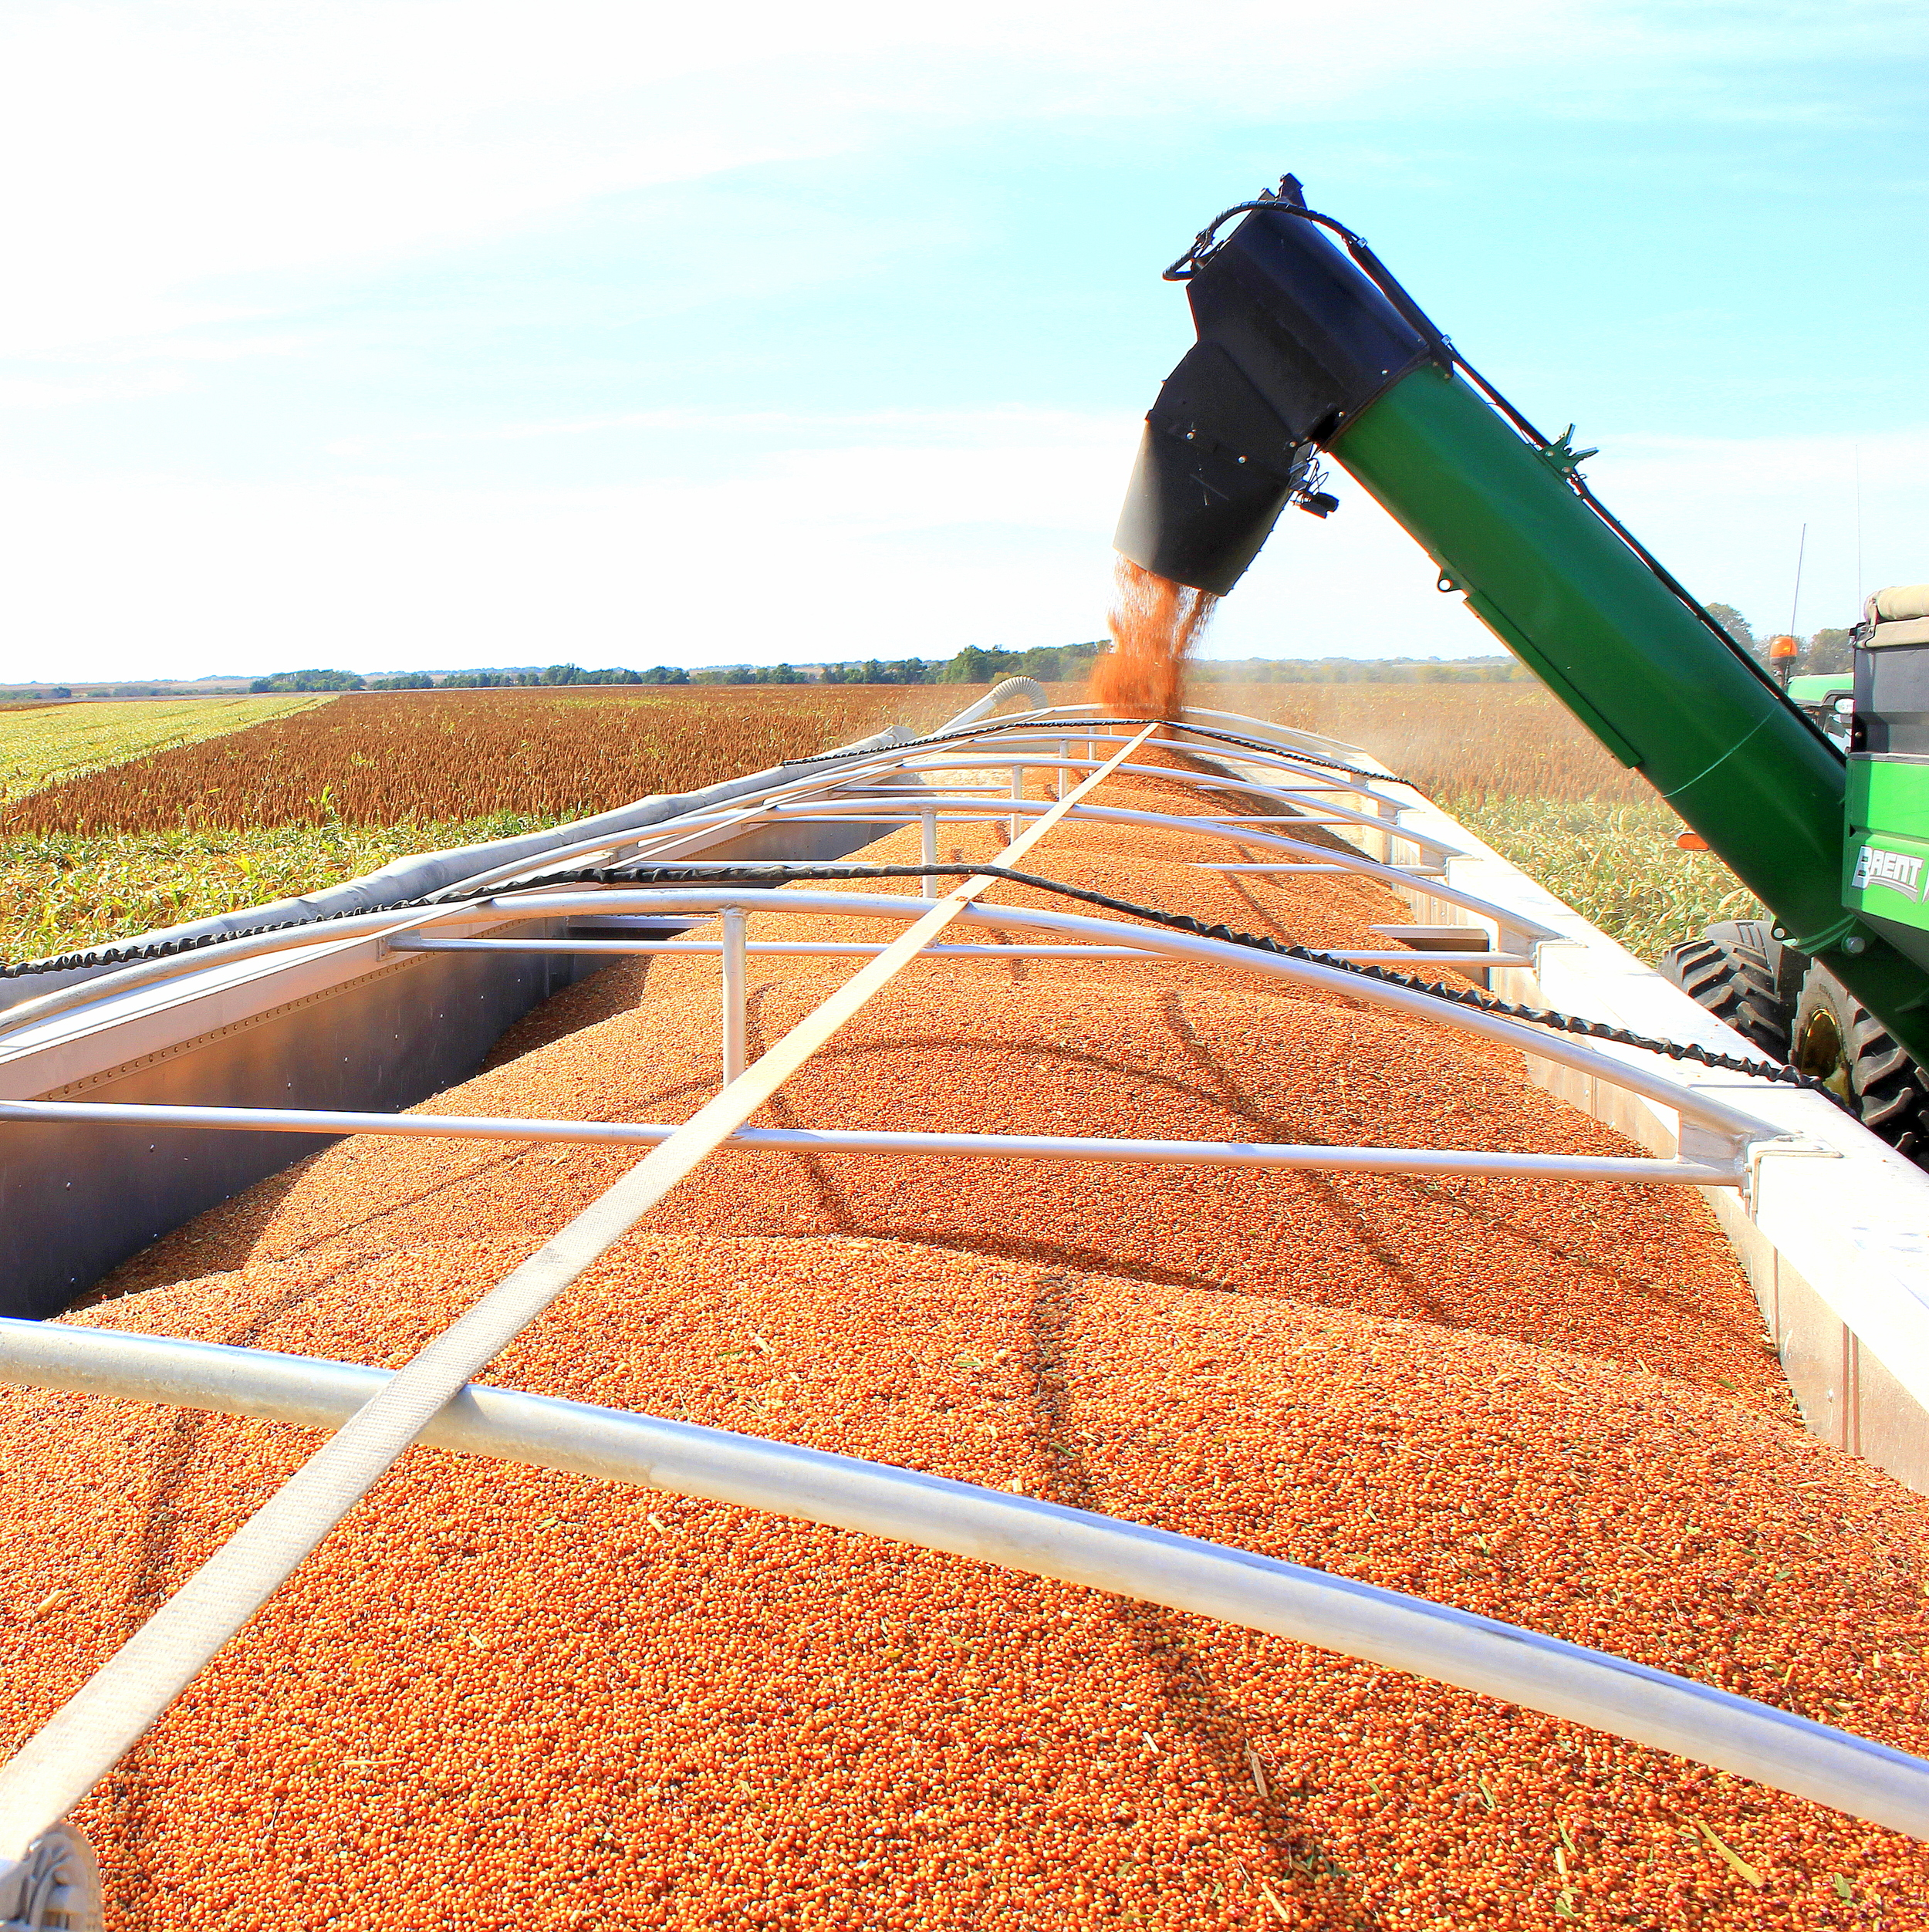 Milo (Sorghum) Harvest 2015 from Peas and Hoppiness - www.peasandhoppiness.com